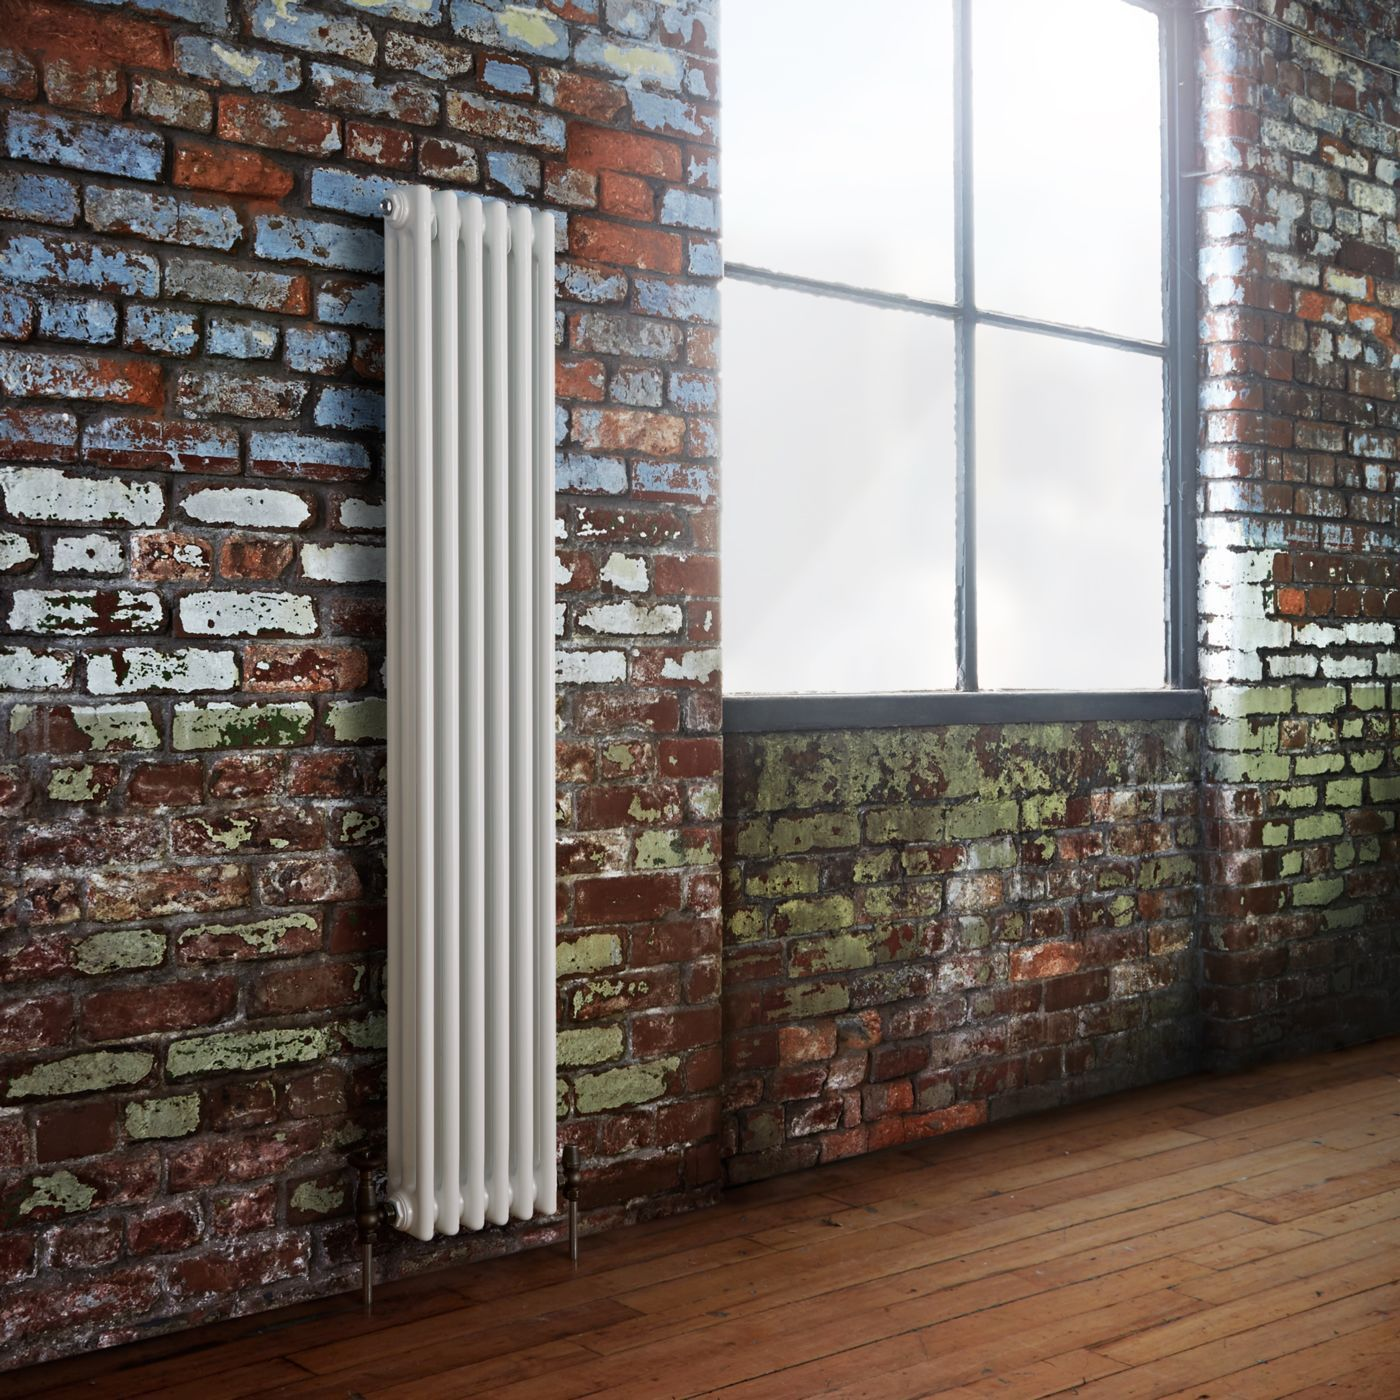 Milano windsor vertical radiator on a brick wall background